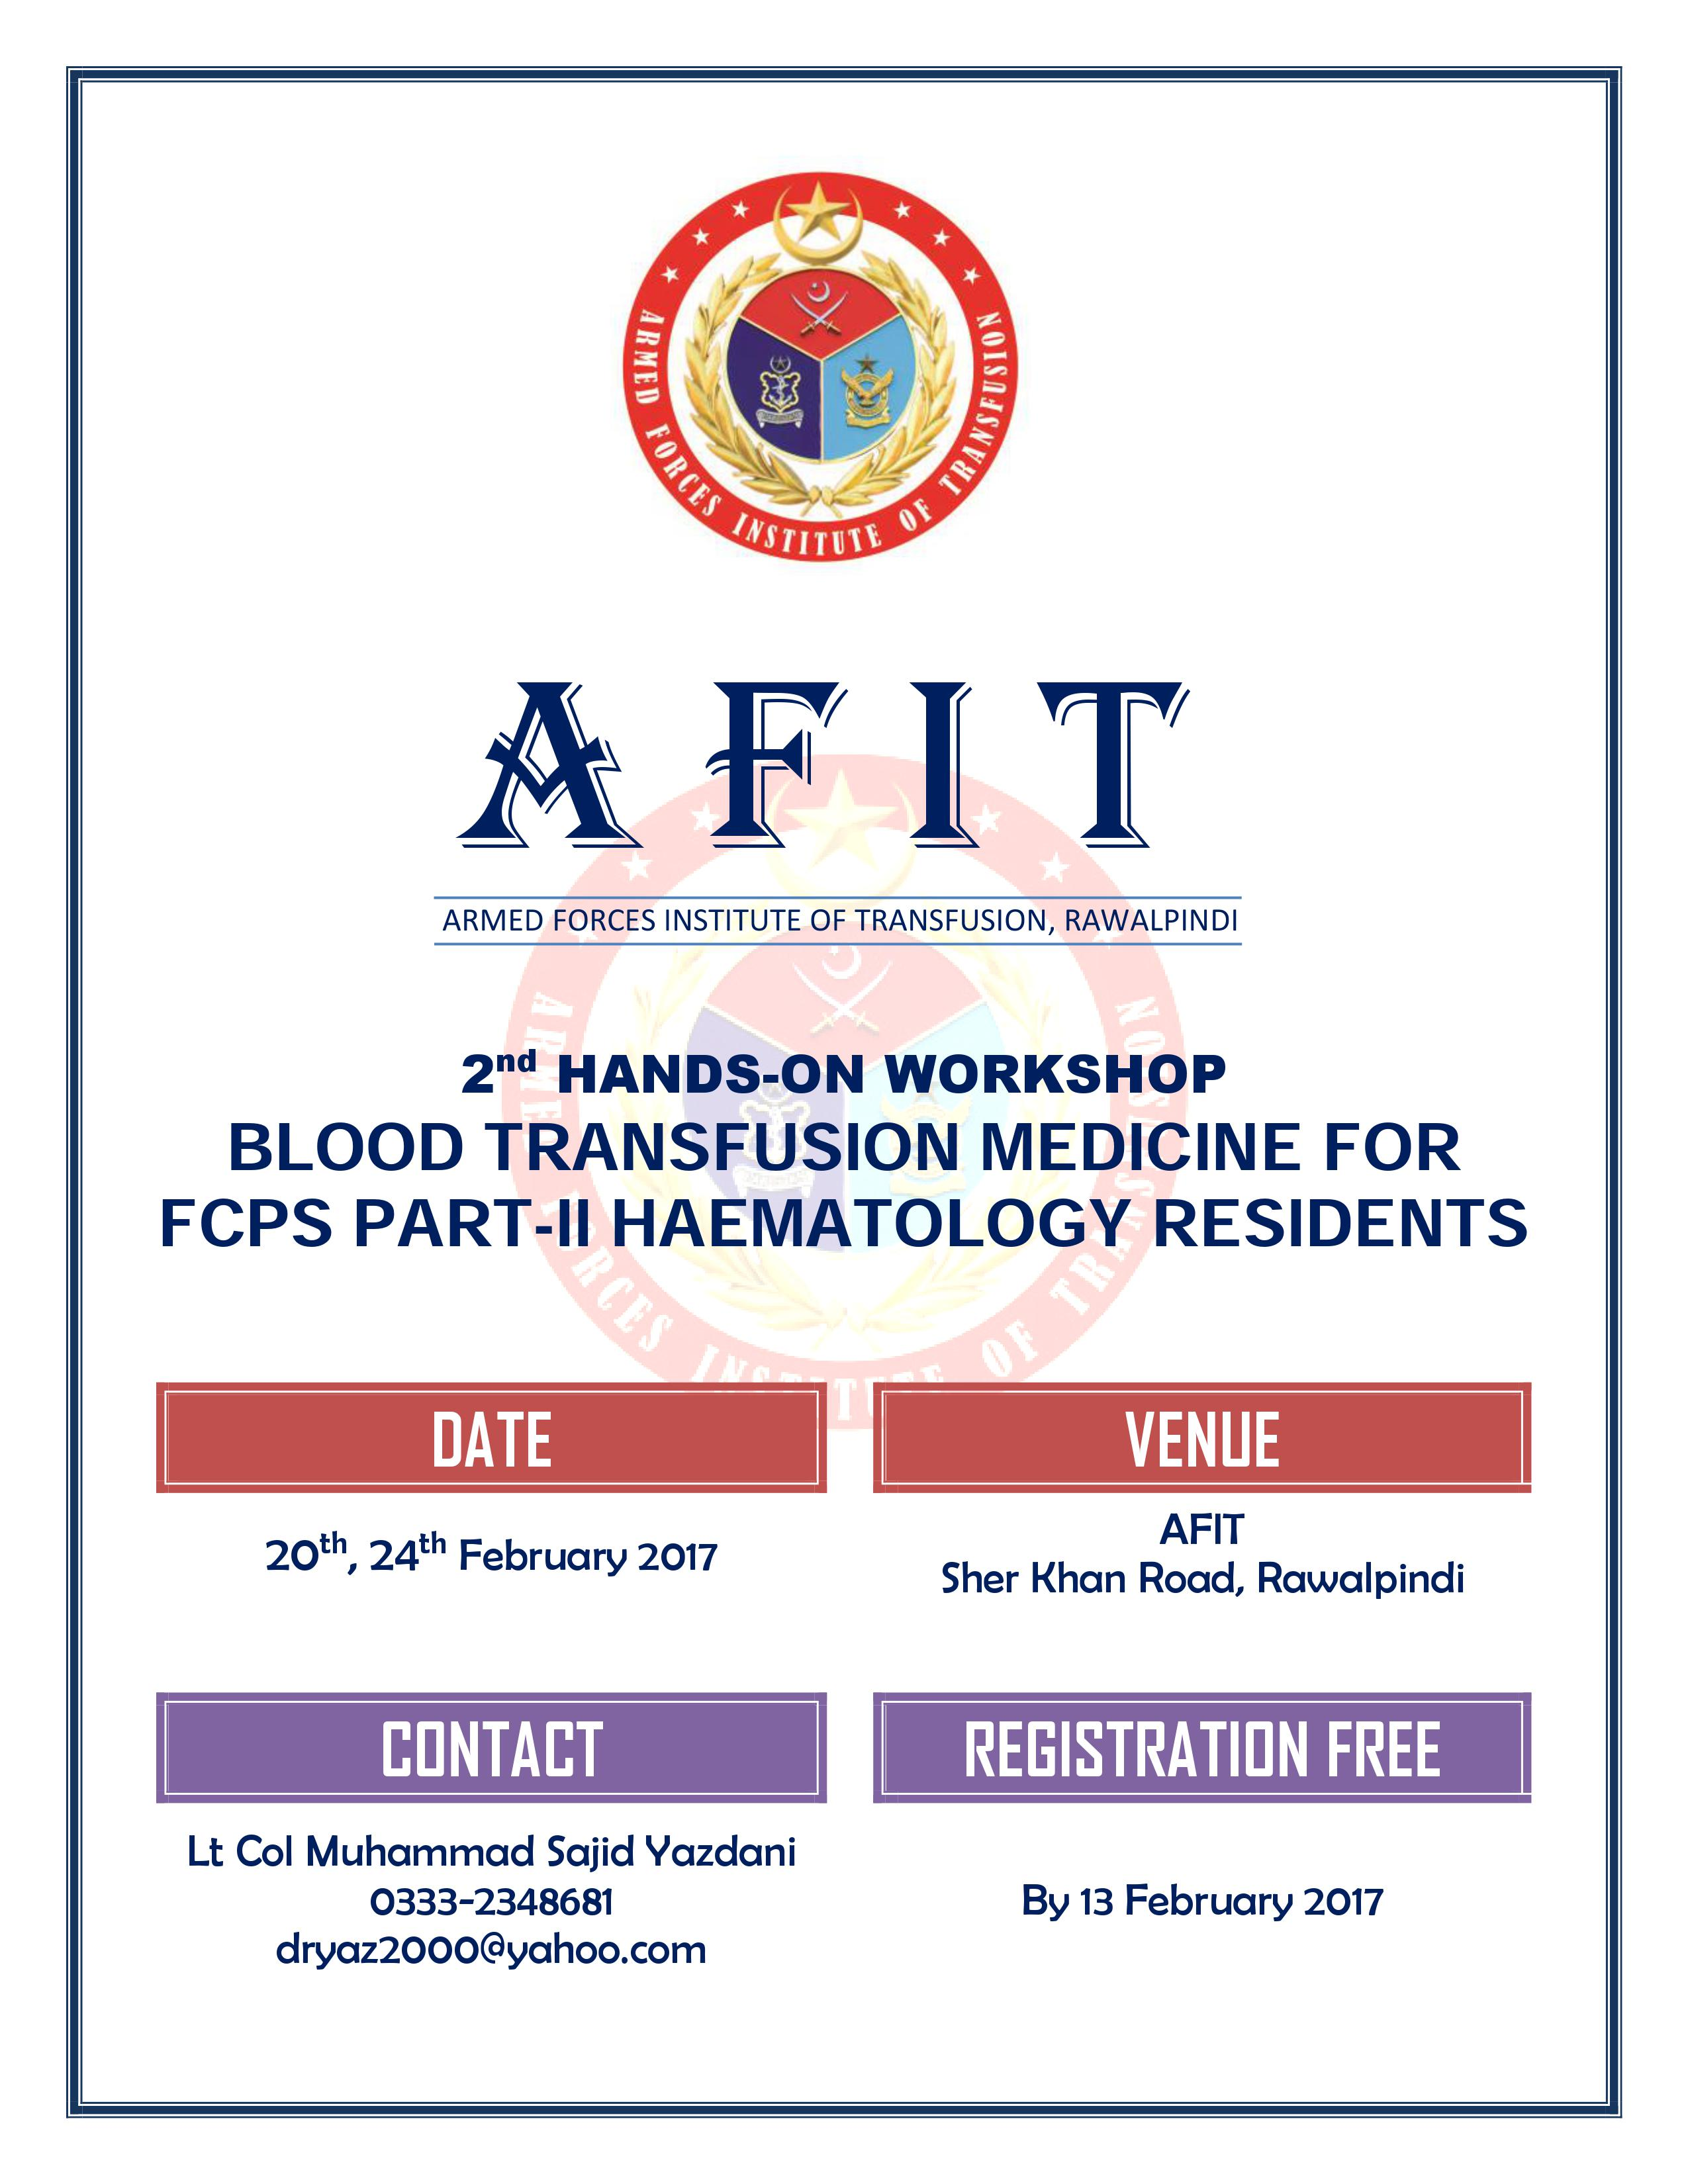 [PSH Workshop] 2nd Hands-On Blood Transfusion Medicine for FCPS Part-II Haematology Residents - 20-24 Feb 2017